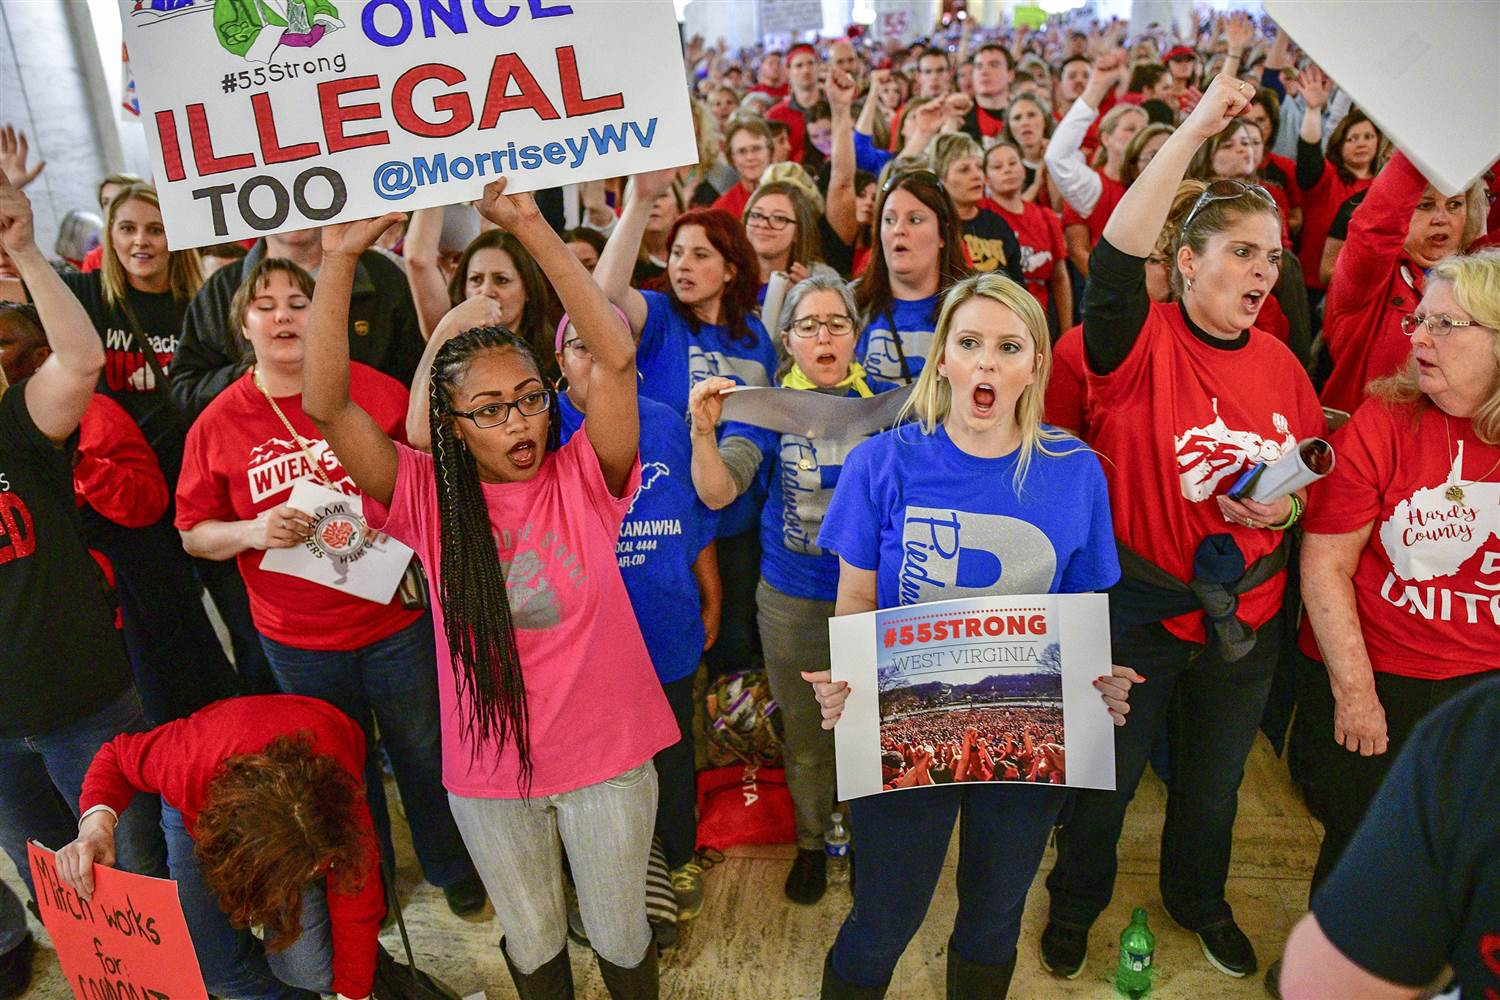 West Virginia teachers strike, teacher wages, labor movement, union employees, Janus v. AFSCME, West Virginia schools, low teacher pay